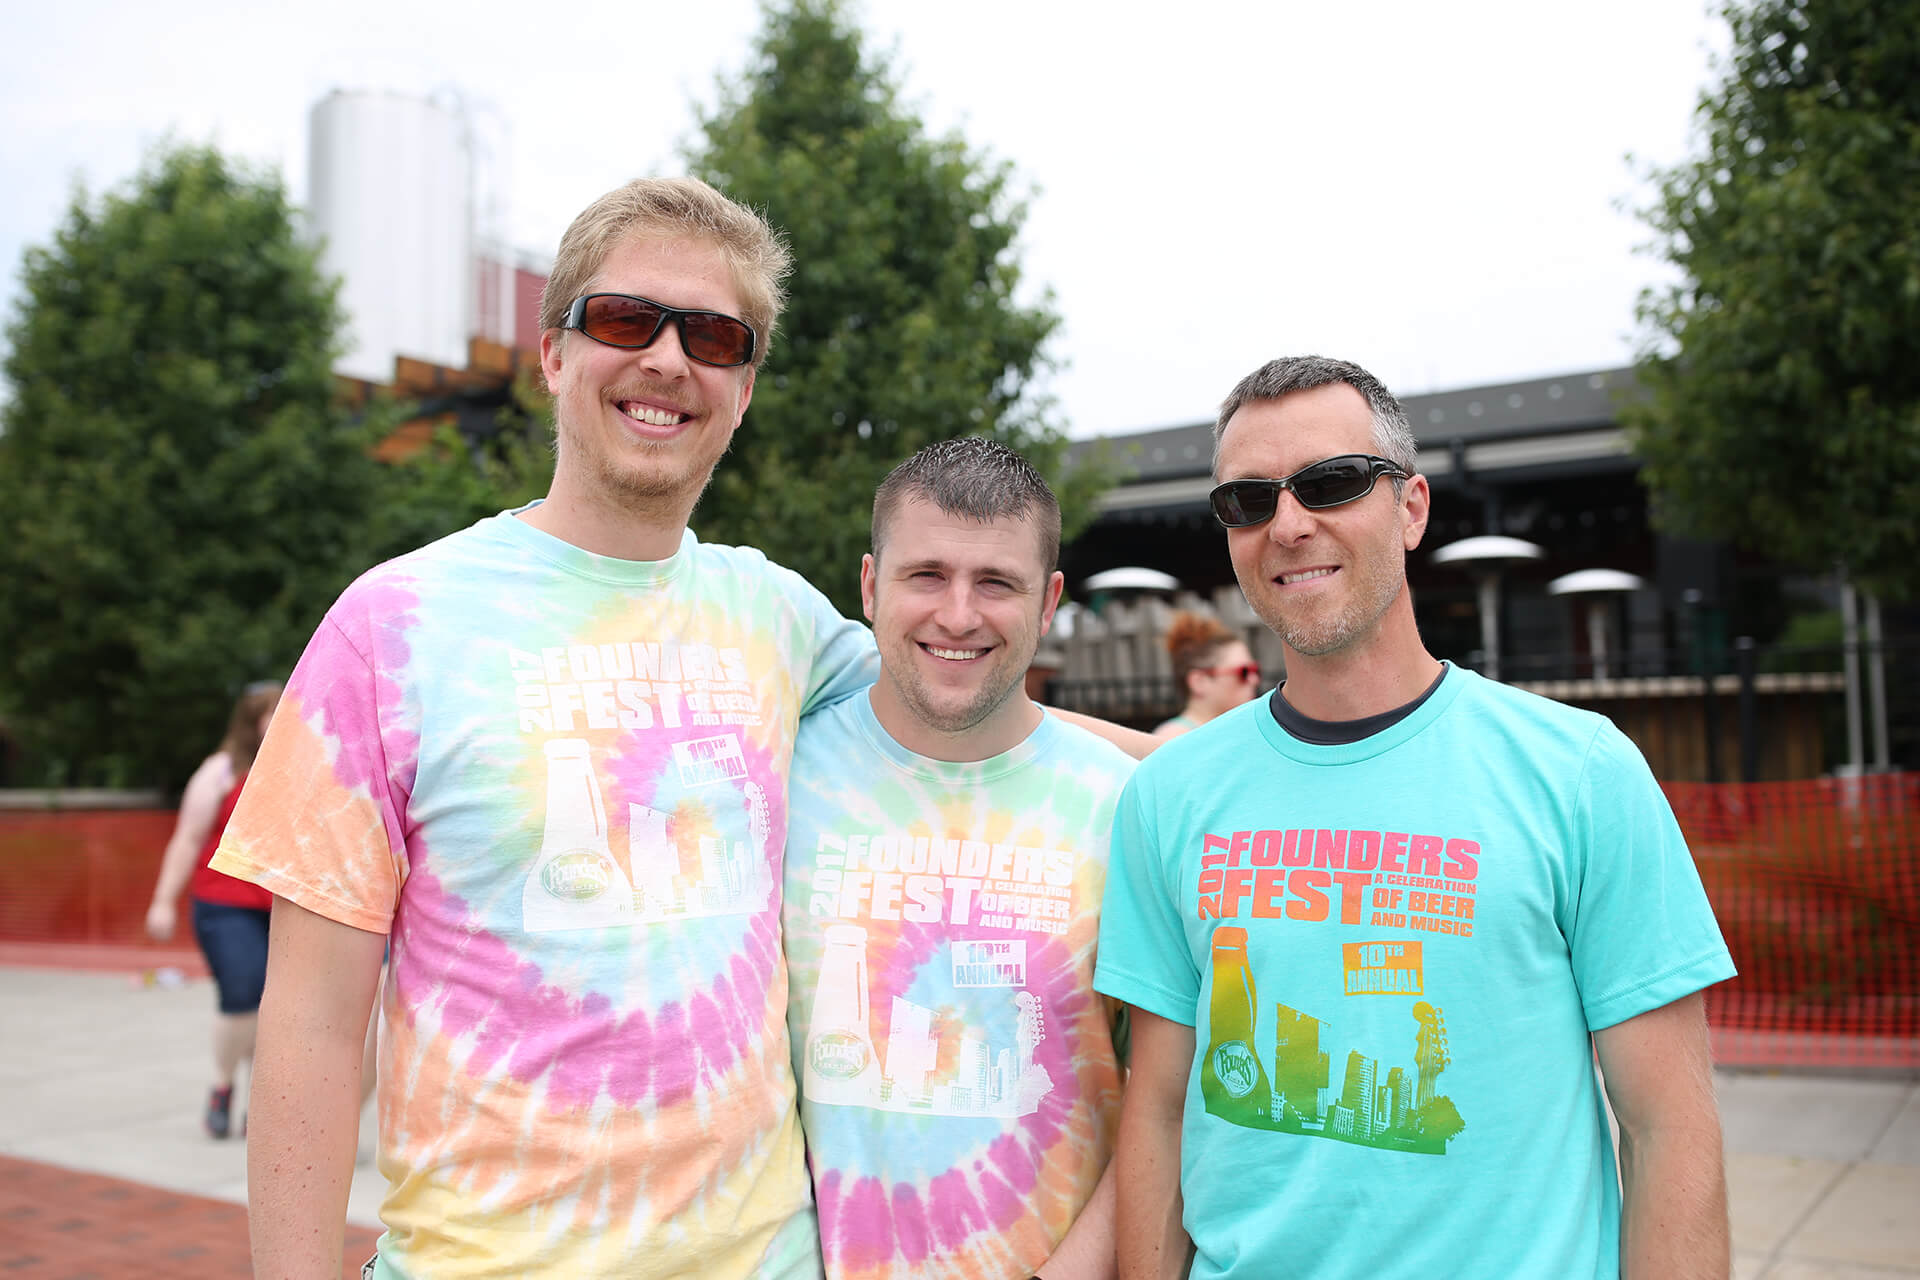 Three men smiling together wearing Founders Fest shirts